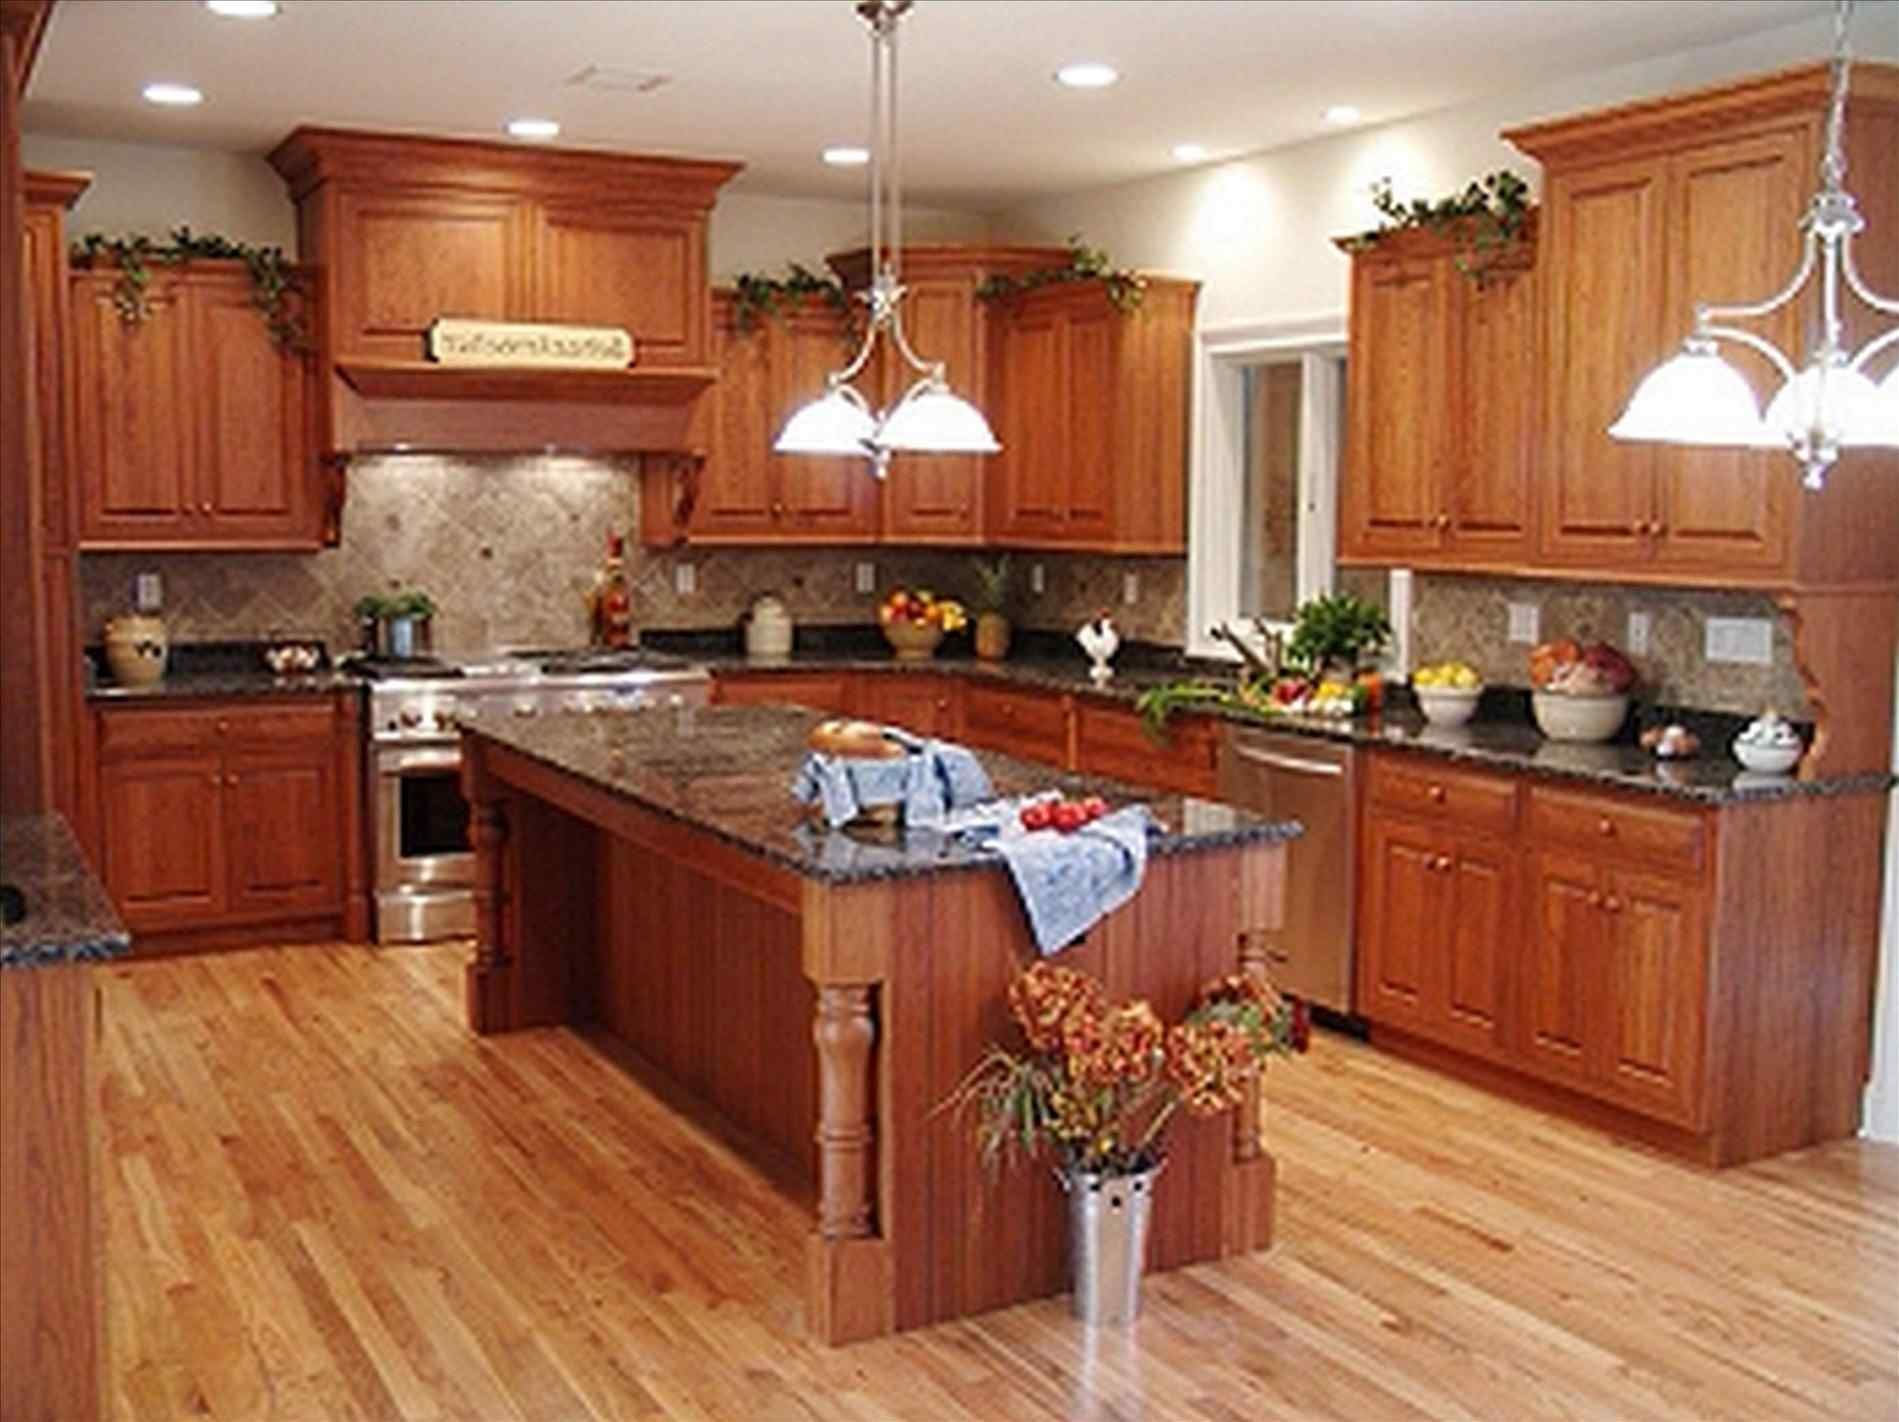 Kitchen Flooring Ideas With Oak Cabinets Flooring Kitchen Flooring Options Over Old Lino Kitchen Cabinet Design Wooden Kitchen Cabinets Custom Kitchen Cabinets